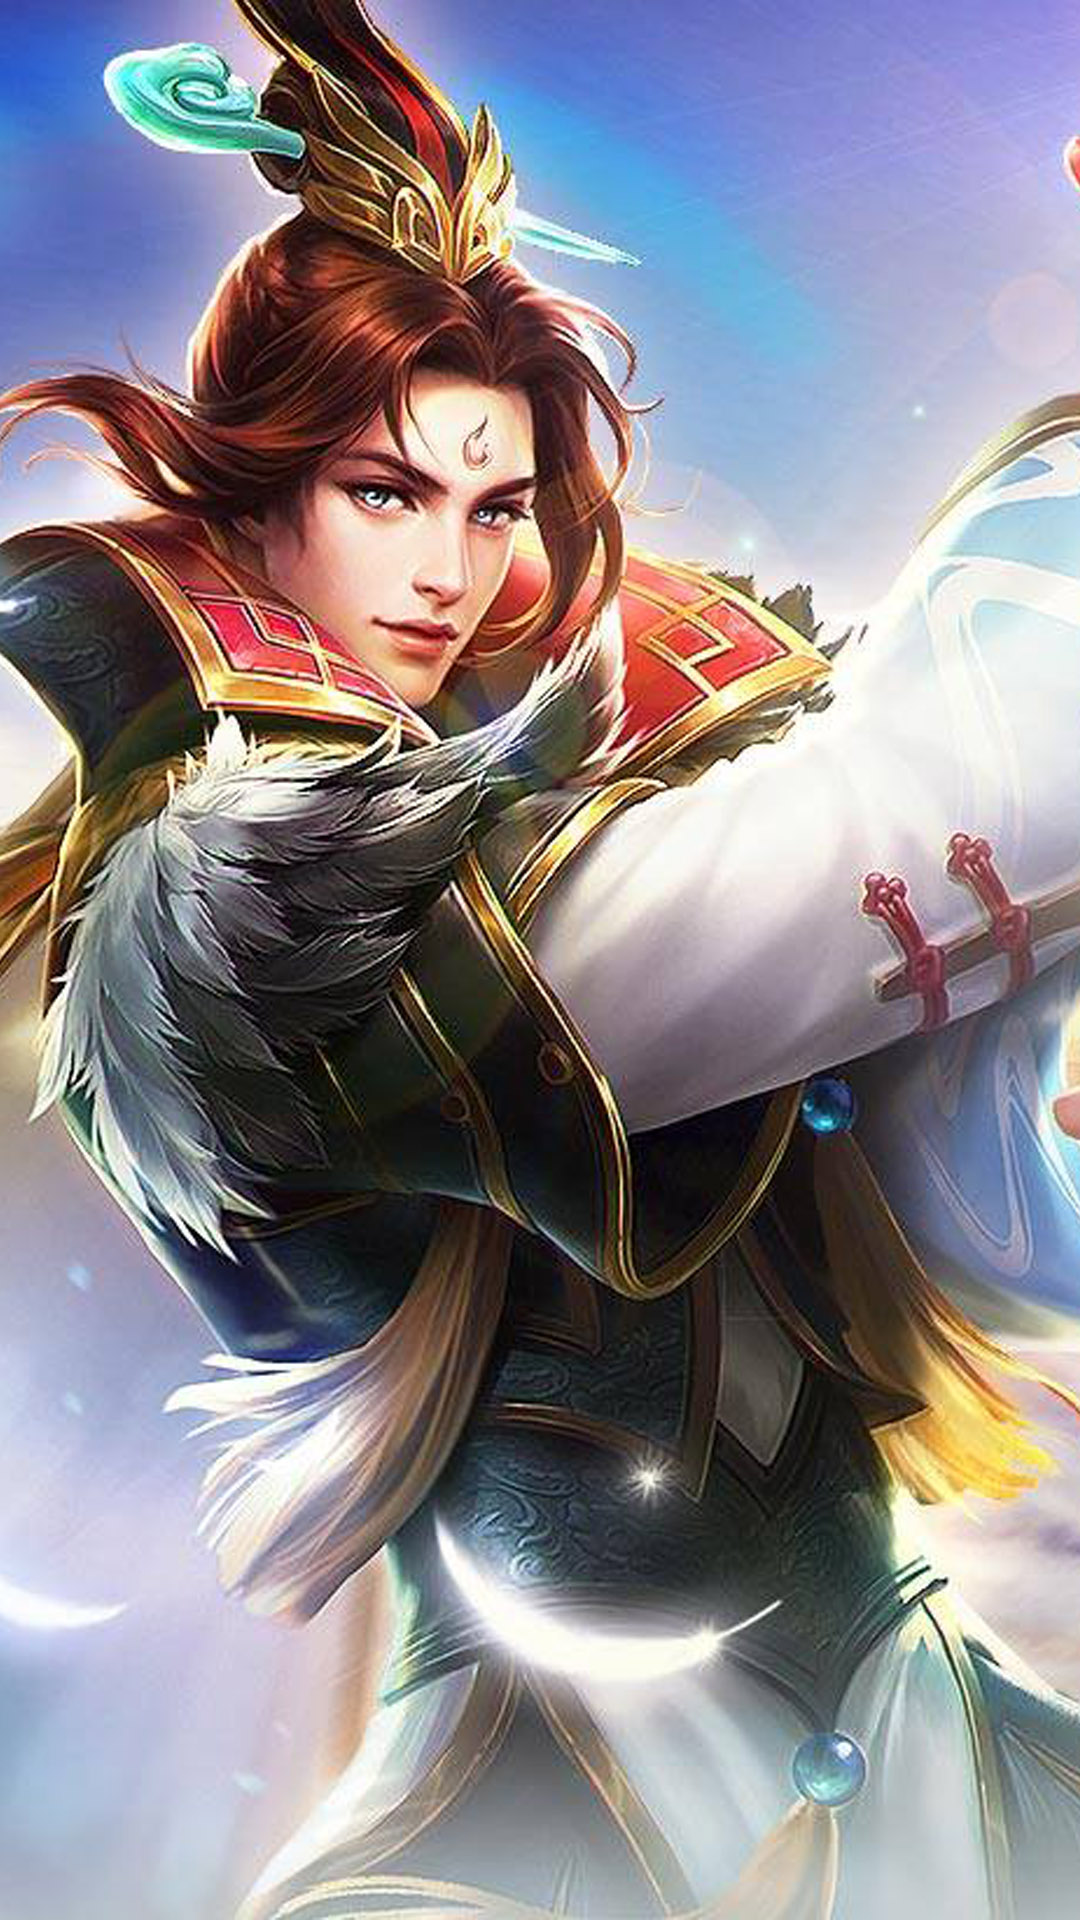 The White Crane Estes Mobile Legends  Download Free 100% Pure HD Quality Mobile Wallpaper